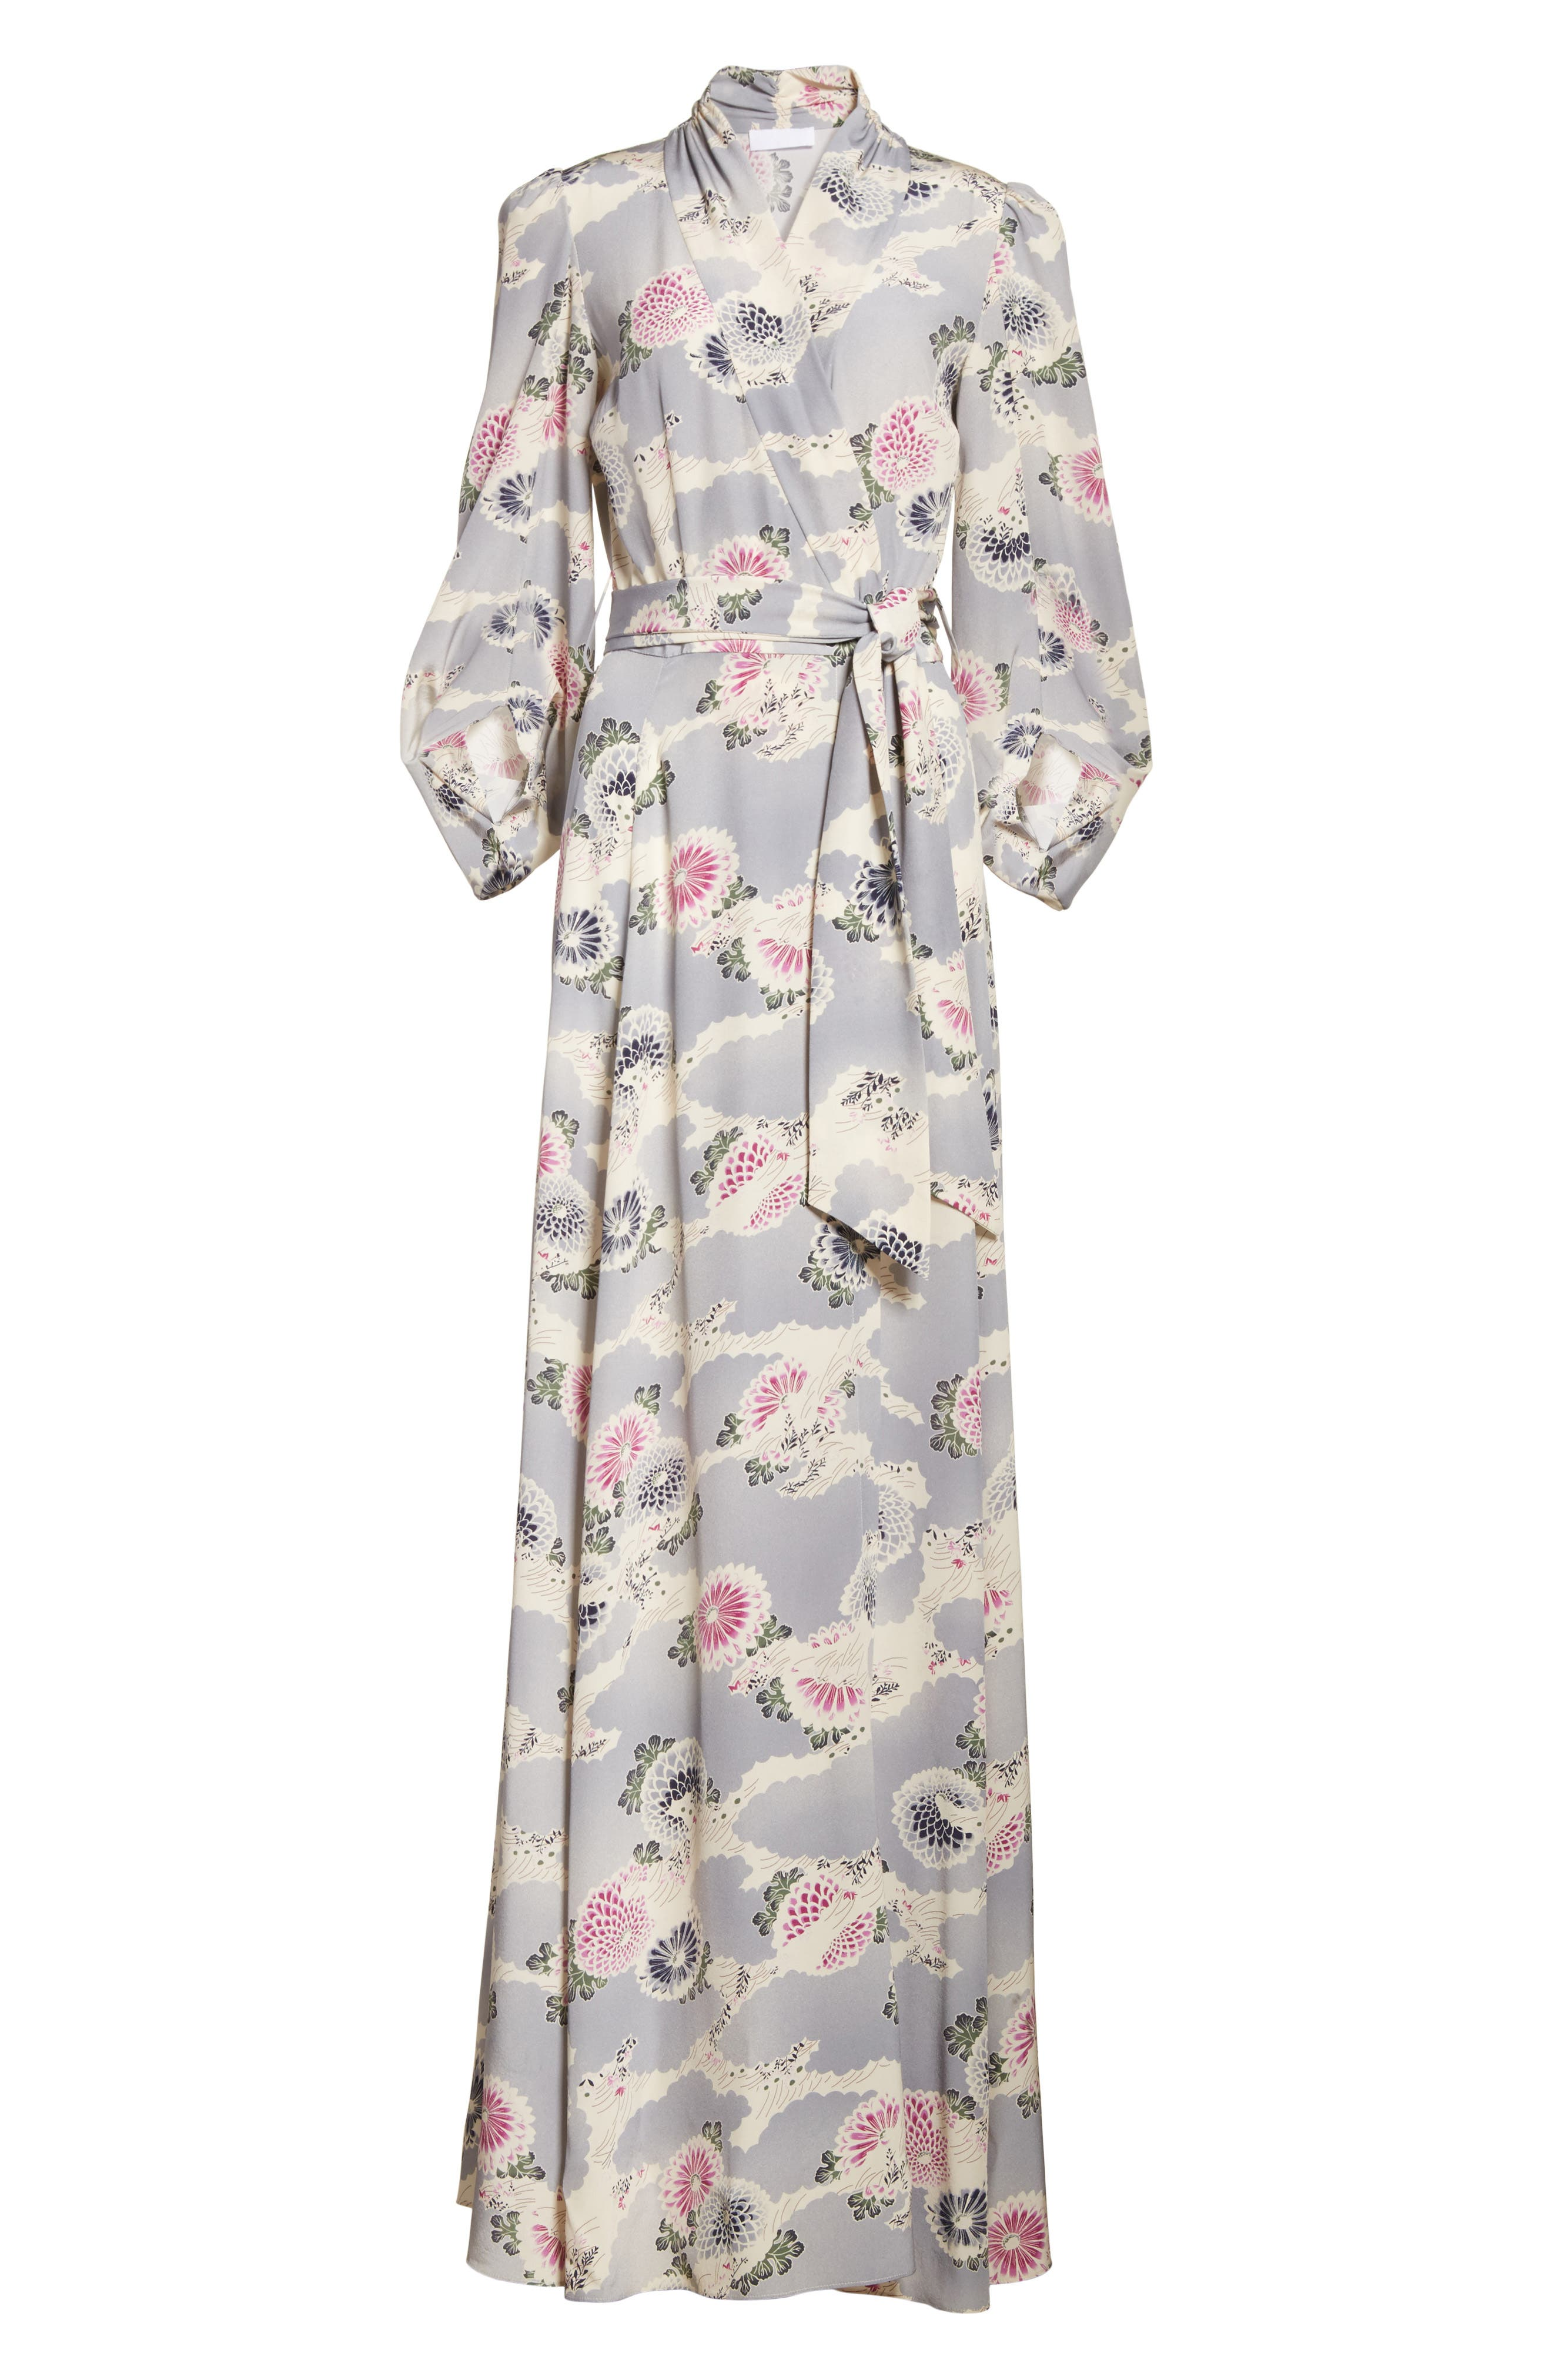 Floral Print Silk Crêpe de Chine Maxi Wrap Dress,                             Alternate thumbnail 6, color,                             020